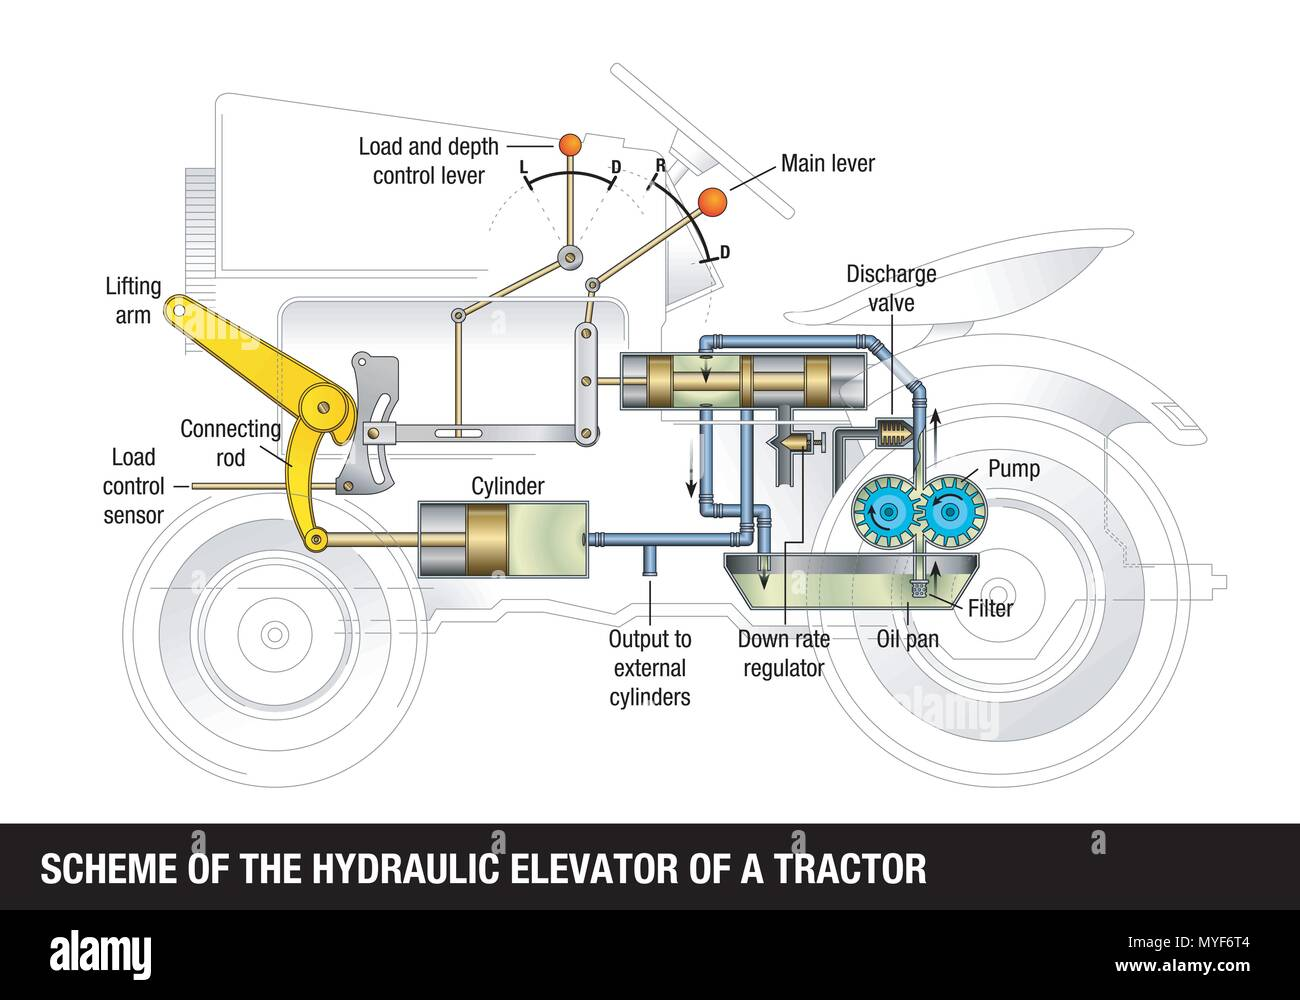 SCHEME OF THE HYDRAULIC ELEVATOR OF A TRACTOR. Explanatory diagram of the  operation of a